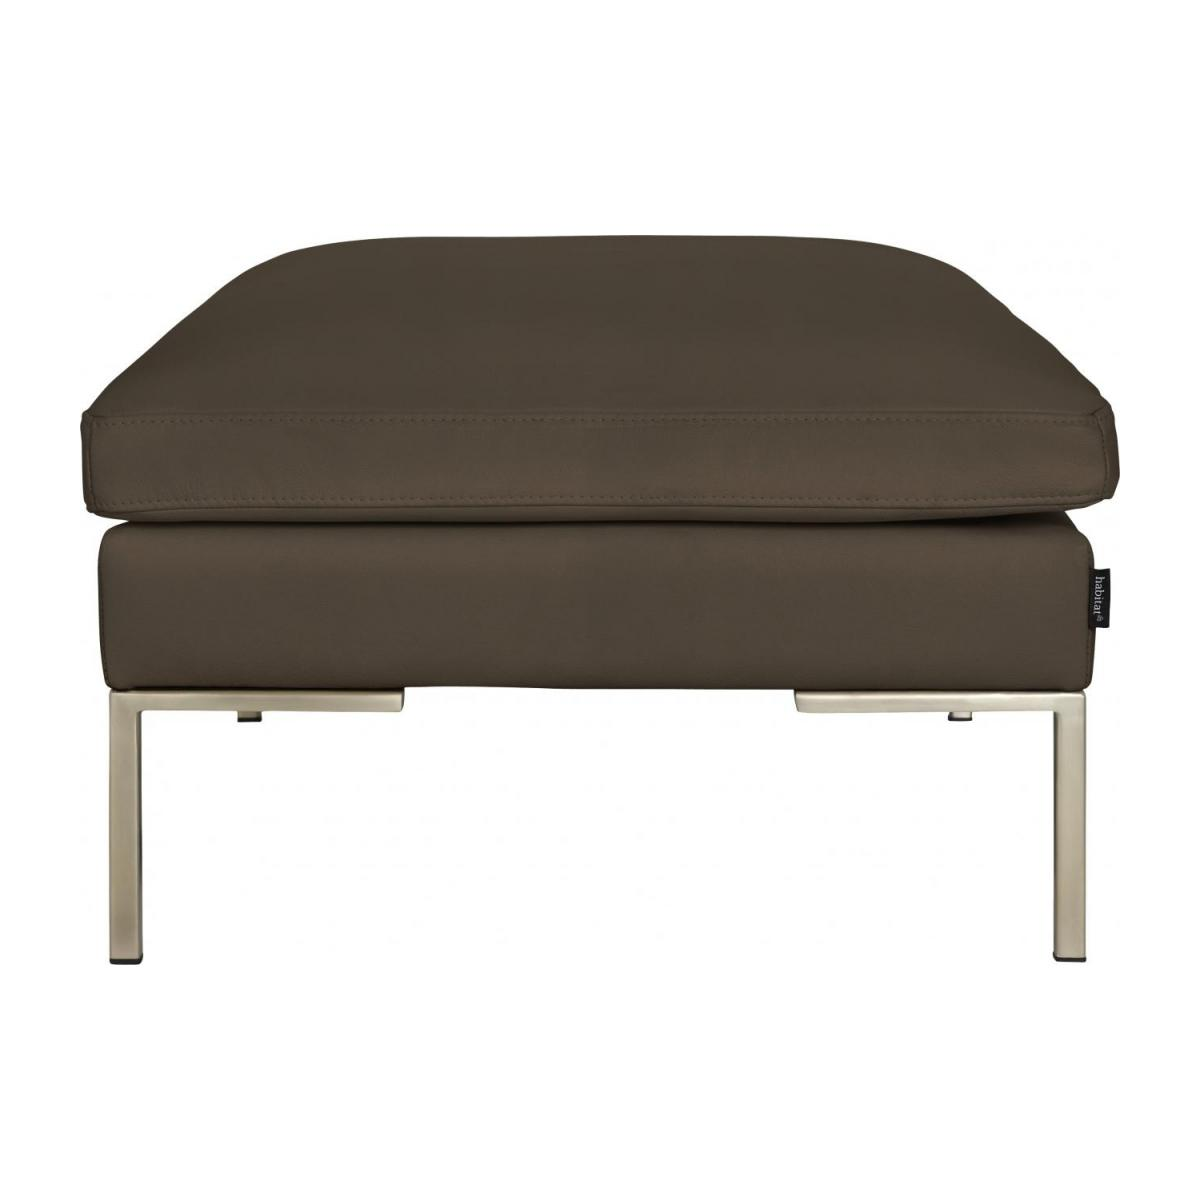 Footstool in Eton veined leather, stone n°4